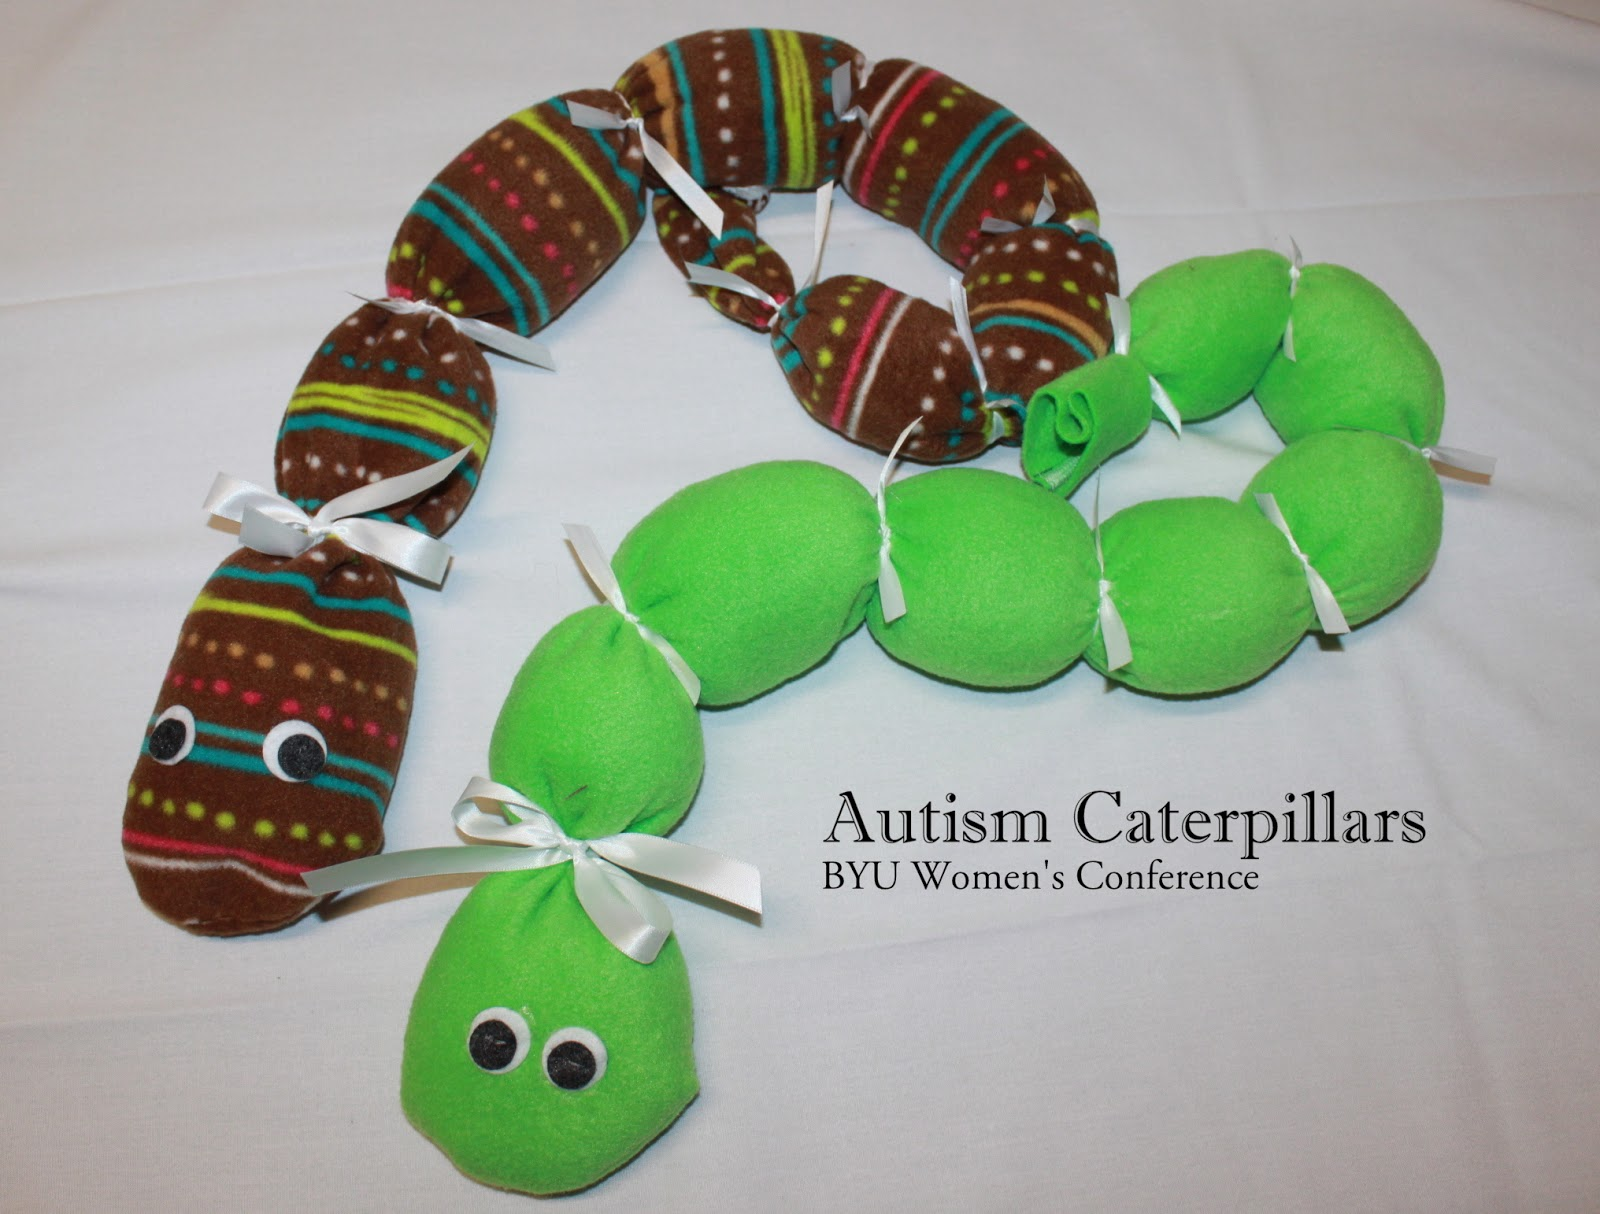 Toys For Autistic Preschoolers : Byu women s conference service ideas autism caterpillar